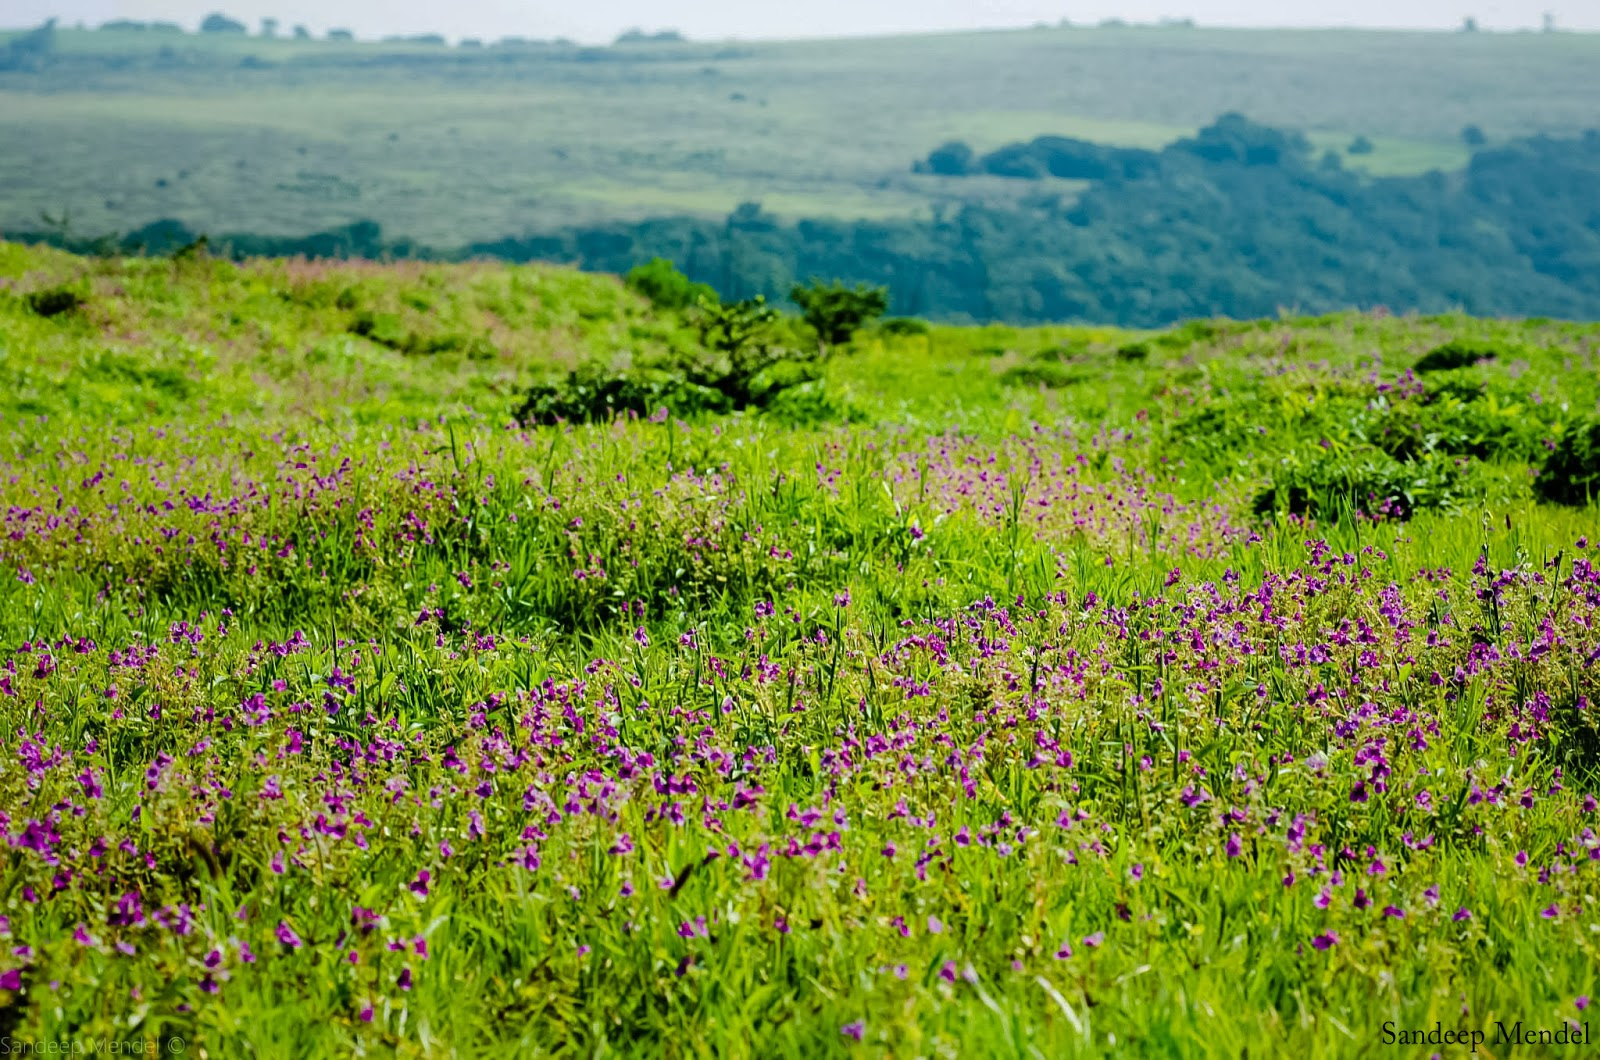 KAAS: Our very own 'Valley of flowers'